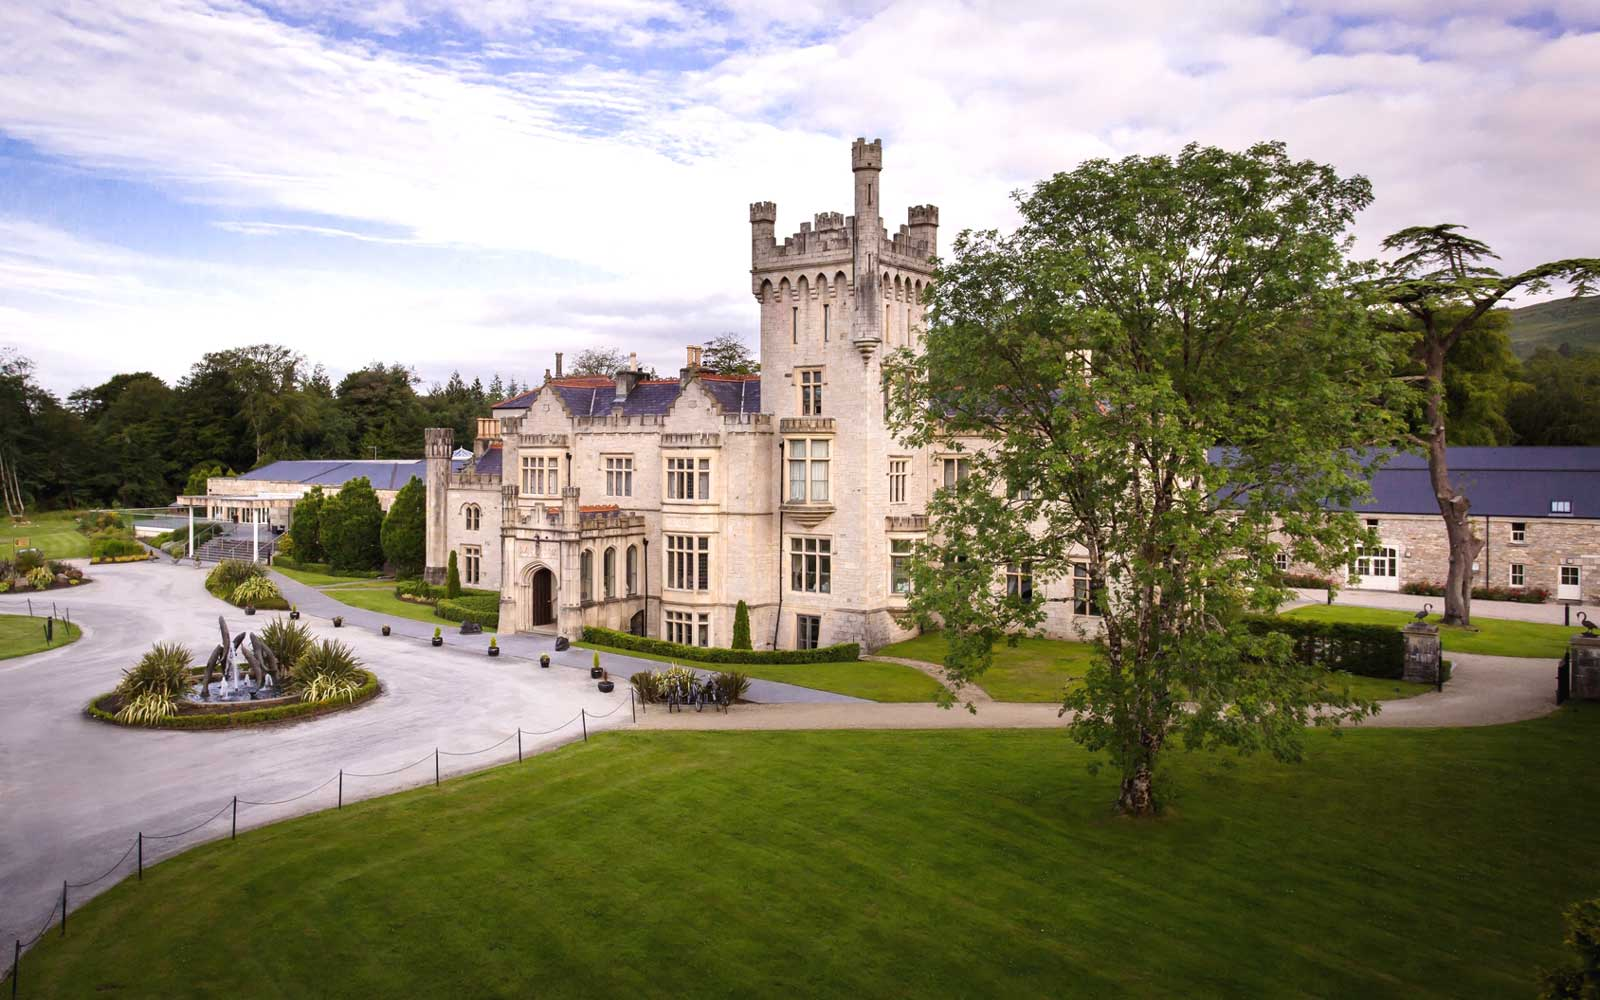 Get 40% off a Stay at This Grand Castle Hotel in Ireland